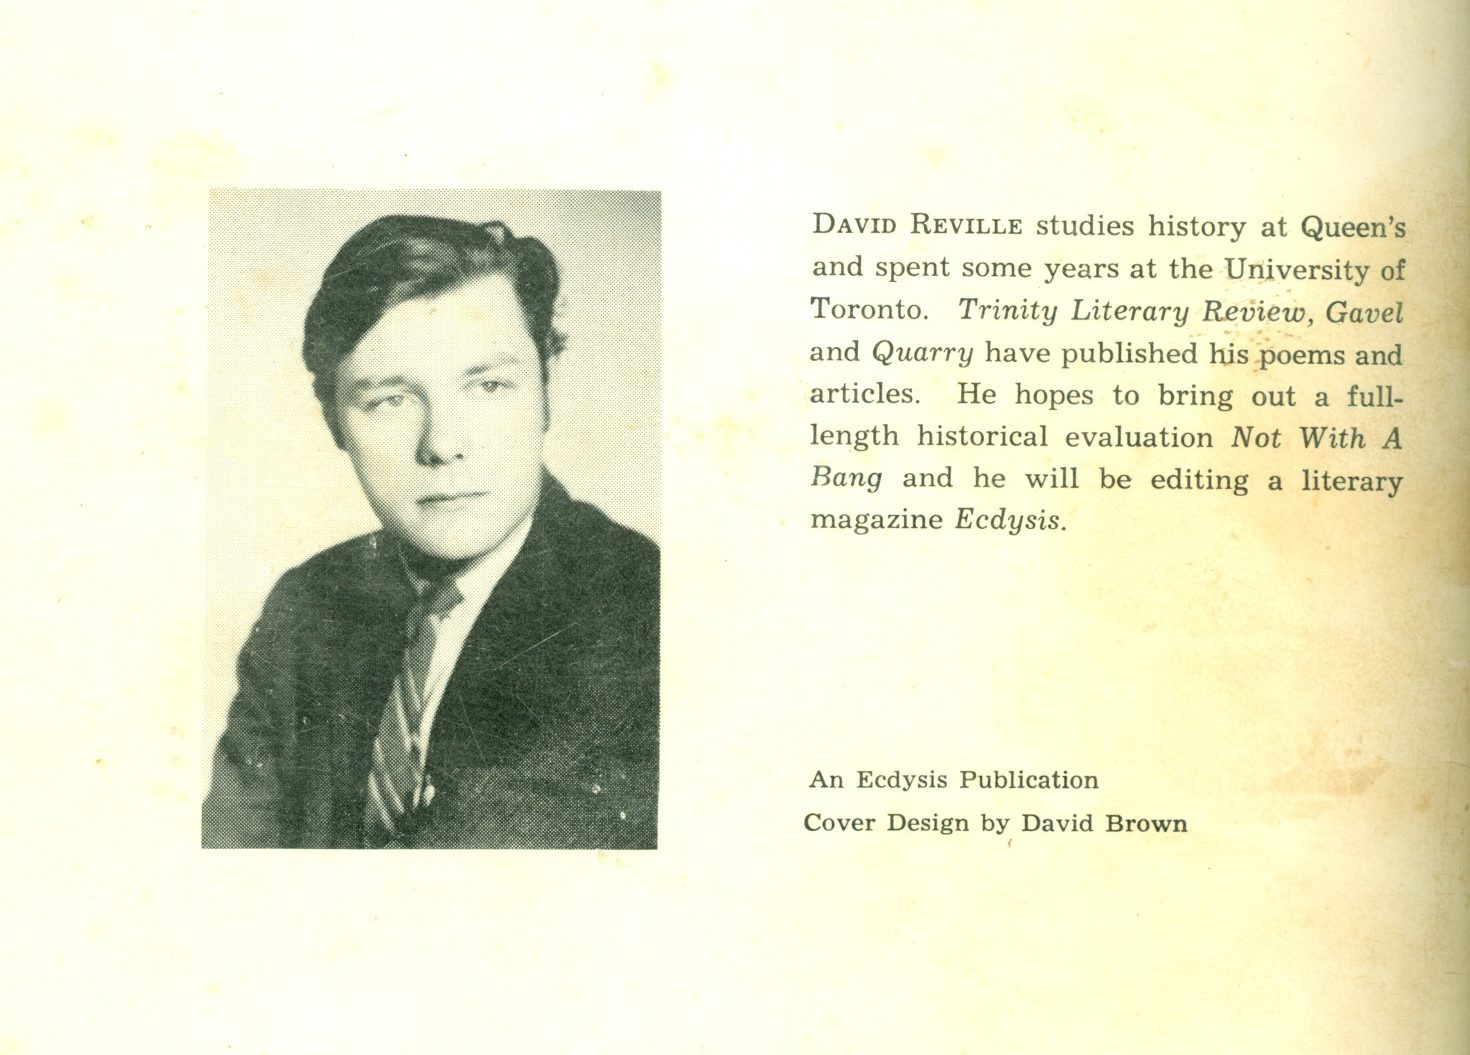 Back jacket photo and bio of a young Reville.